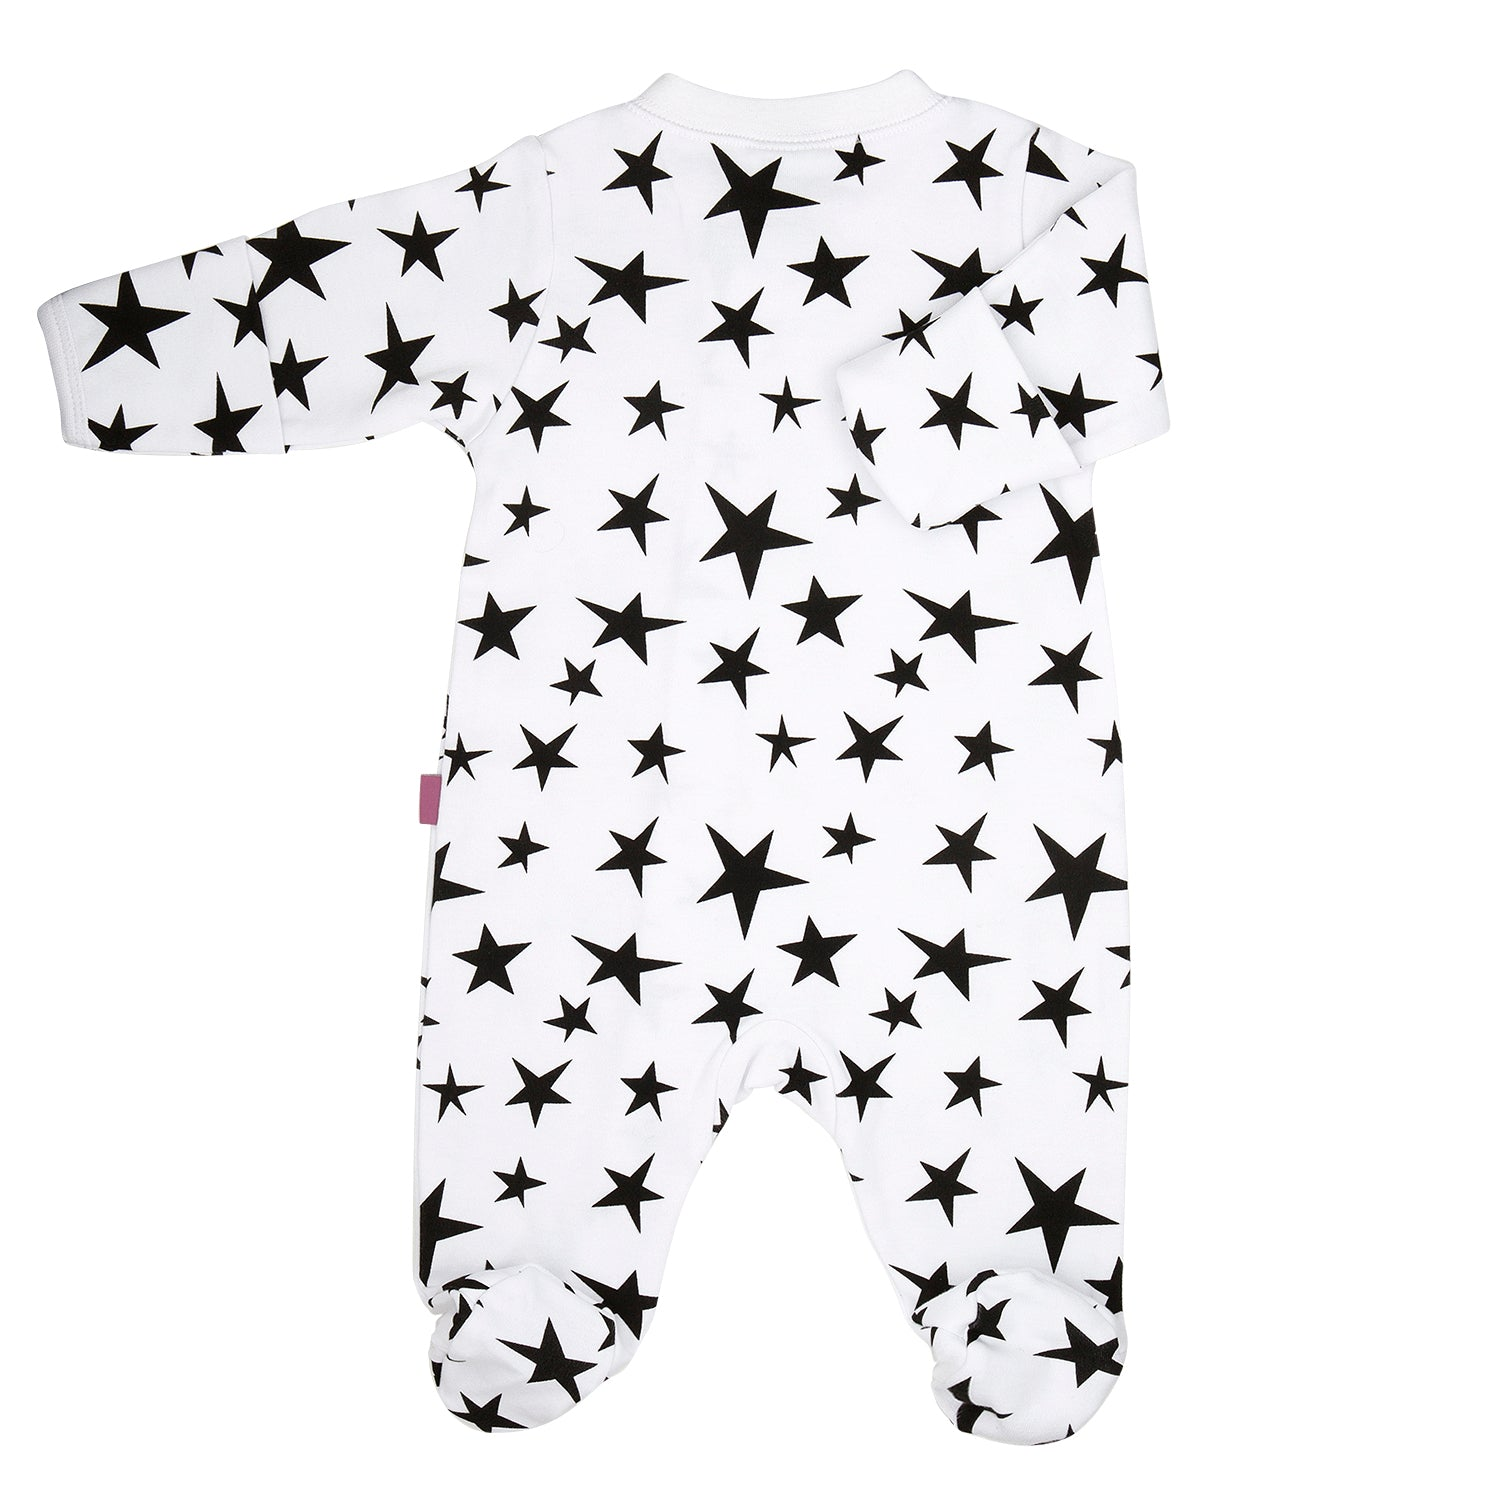 back side of a 100% cotton footed and fitted sleepsuit for baby's with a bright black star print